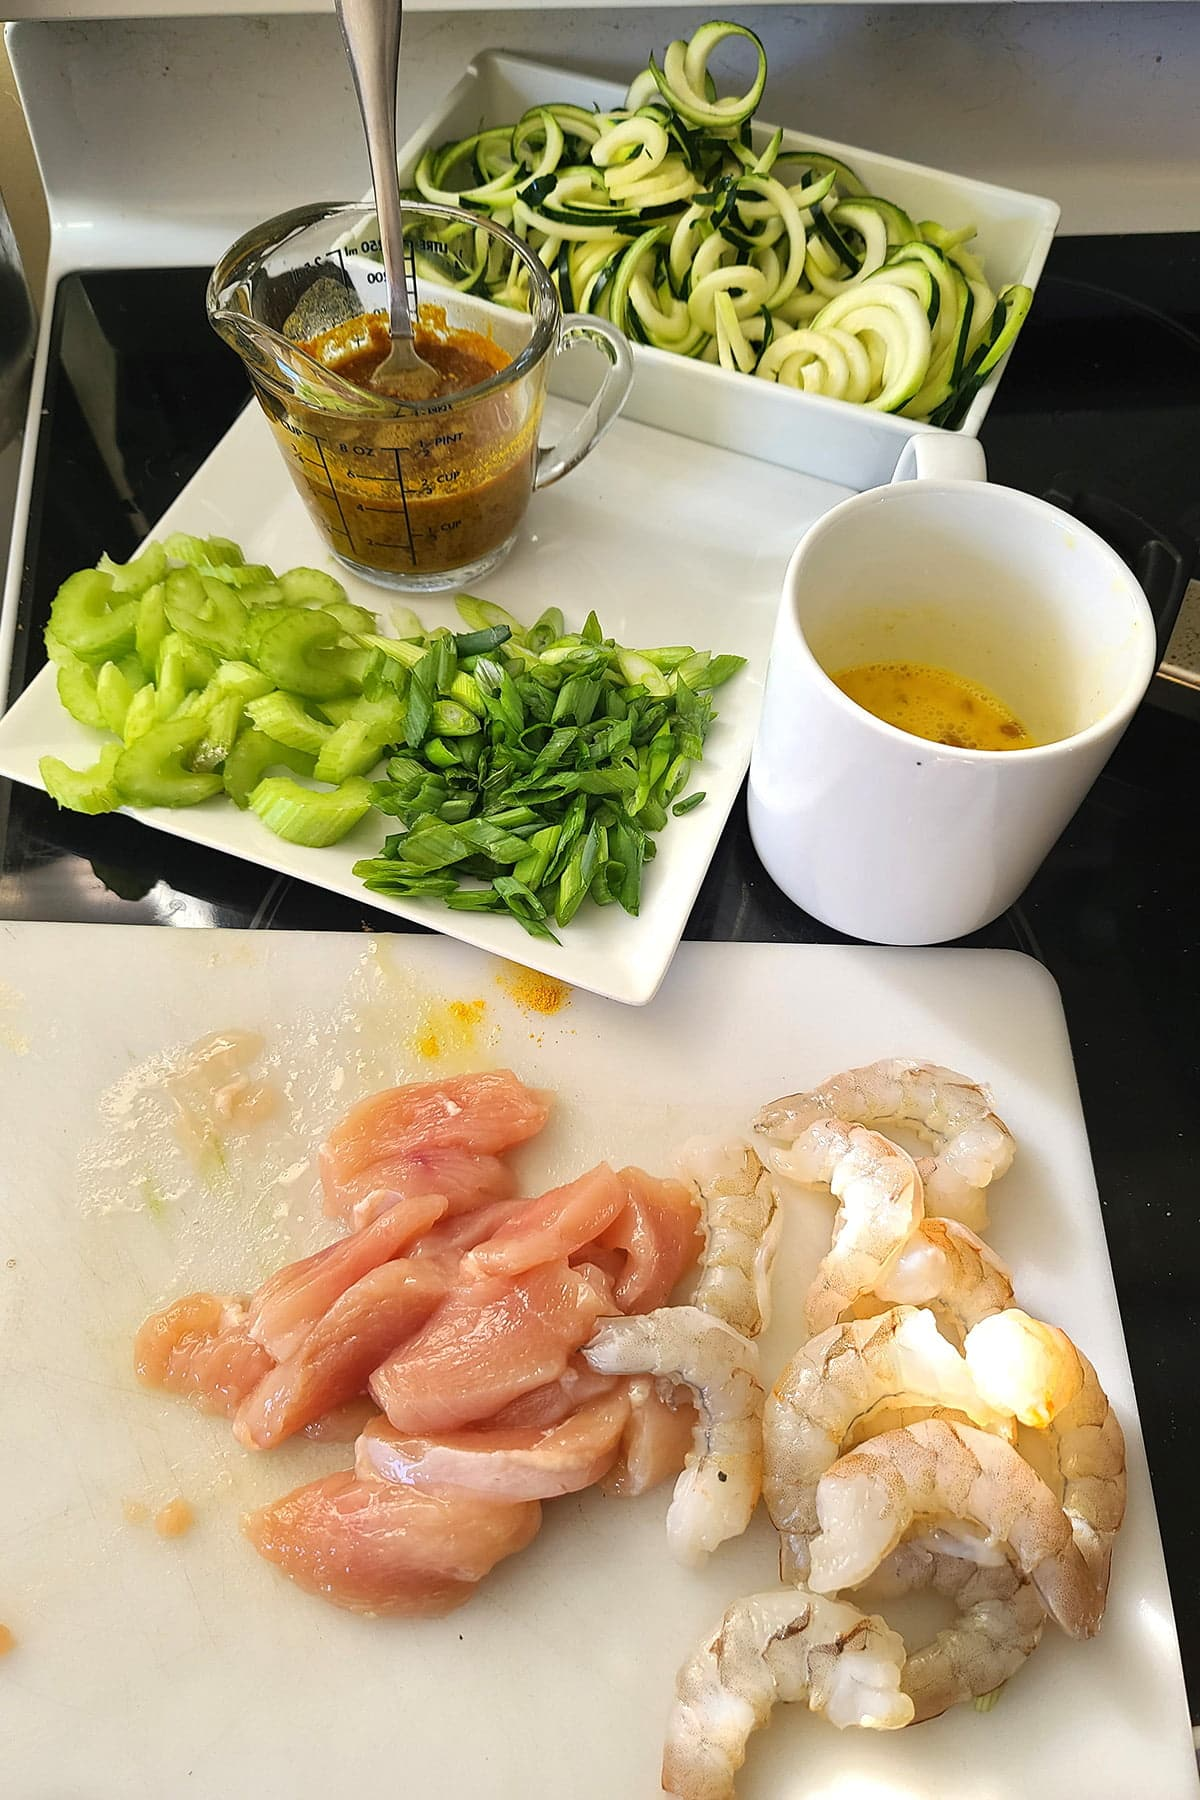 Prepped items: chicken and shrimp on a cutting board, celery and green onions on a plate, sauce in a measuring cup, egg mixture in a mug, and zoodles in a plastic container.